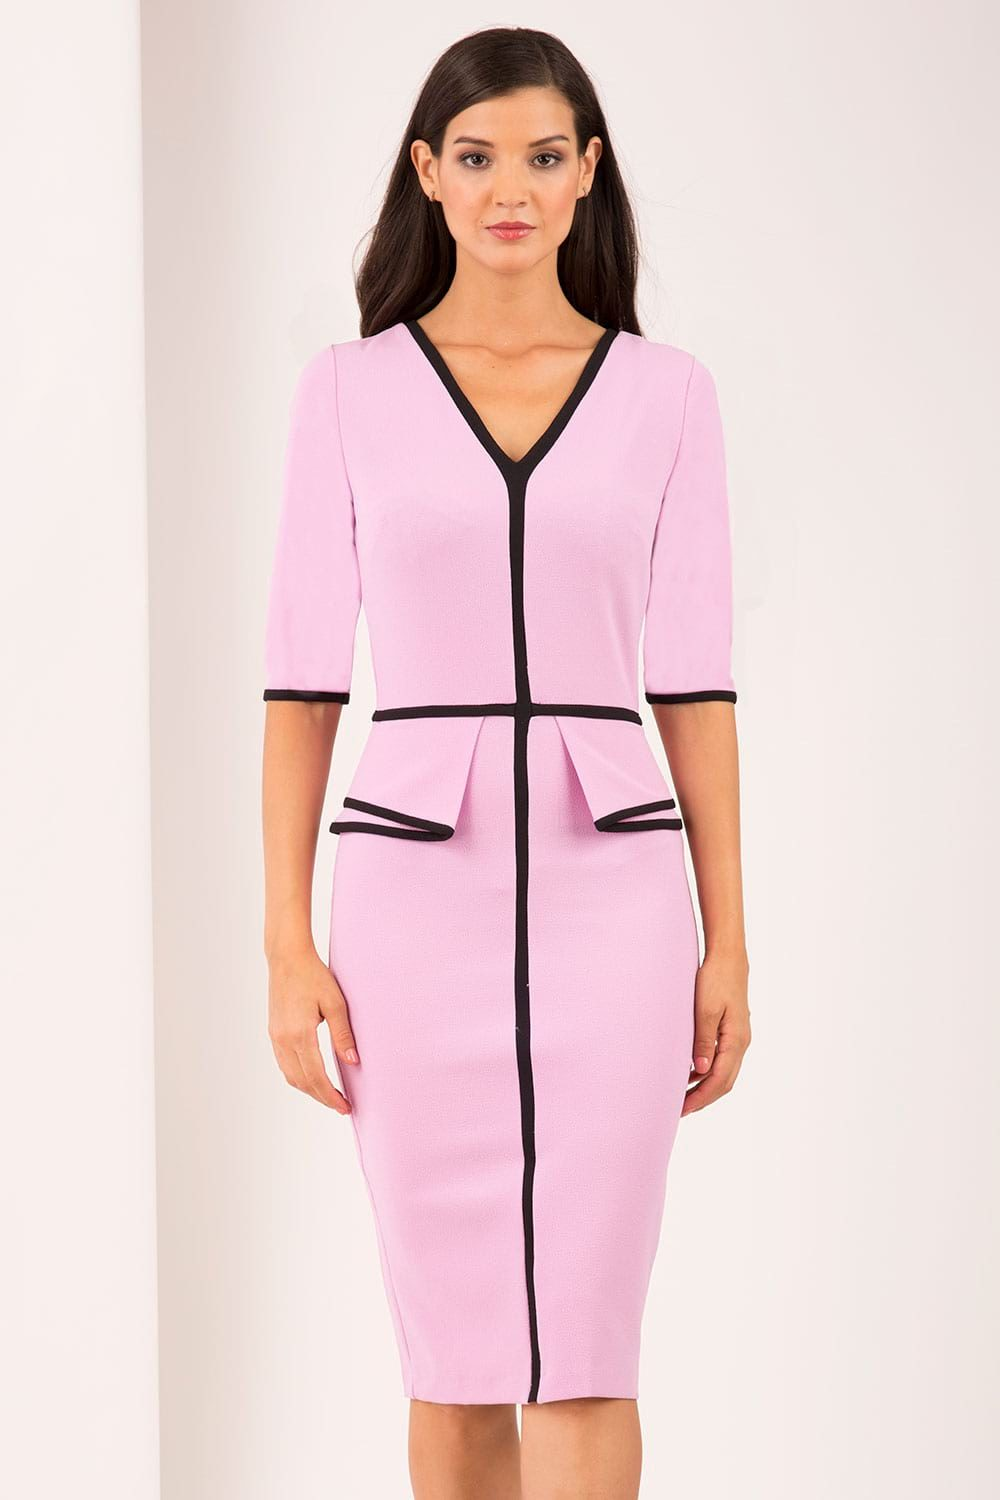 Hybrid Fashion 1395 Velma Contrast Piping Peplum Dress